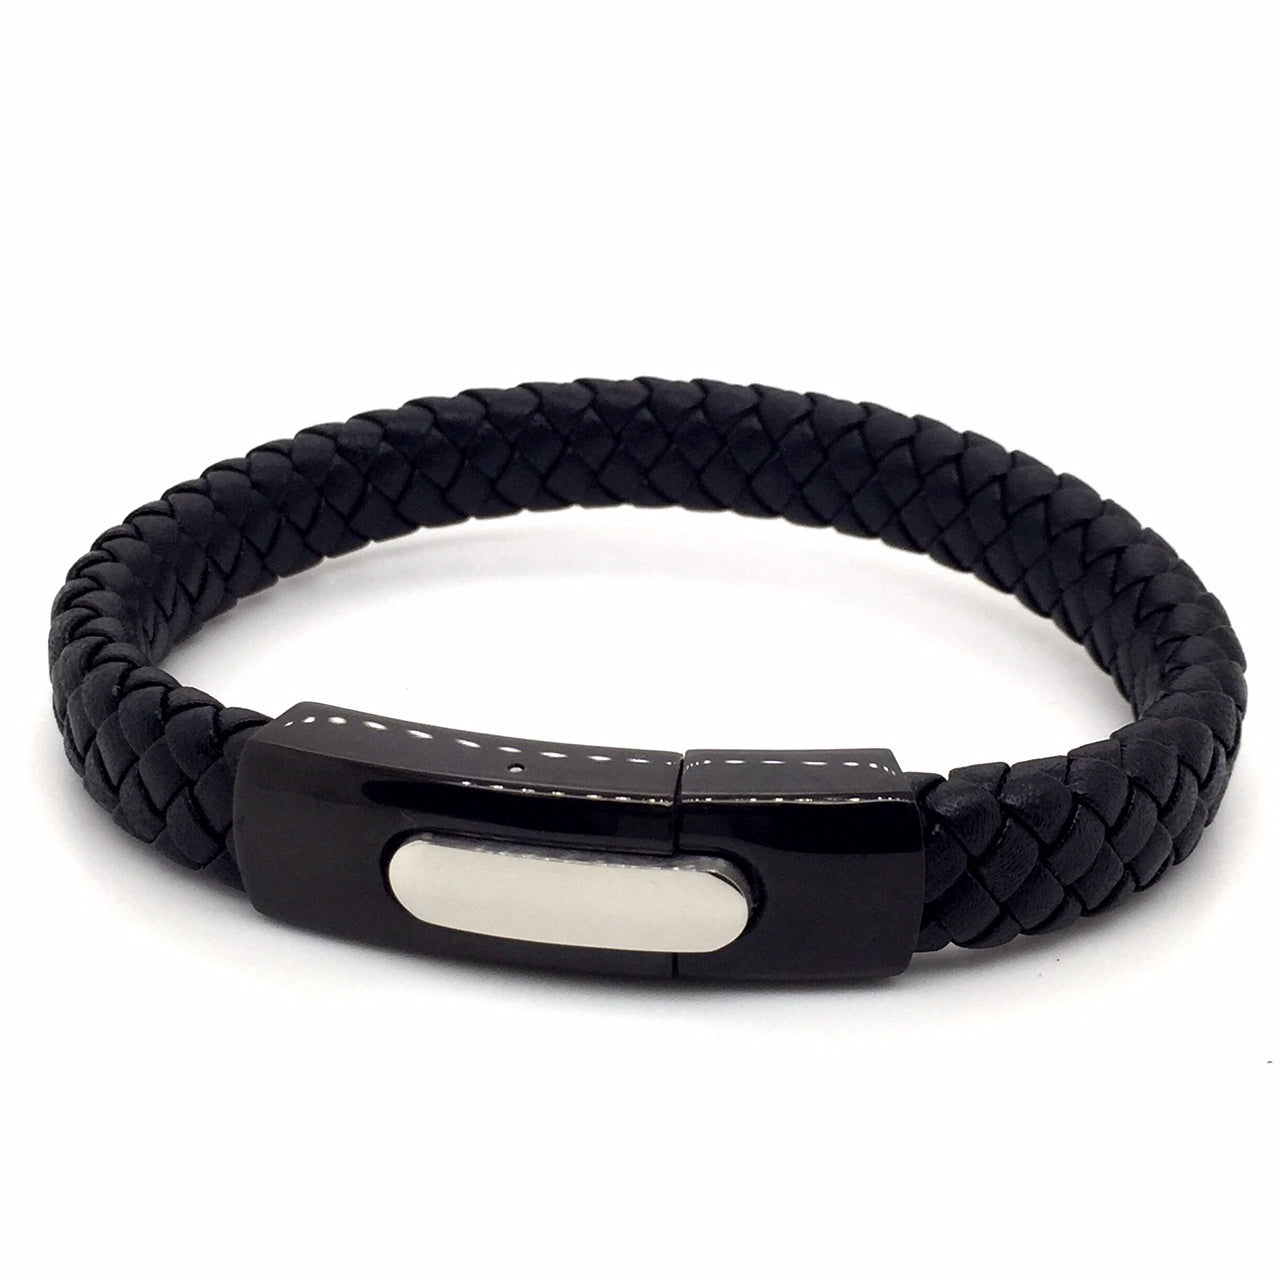 Stainless steel leather bracelet - Red Carpet Jewellers